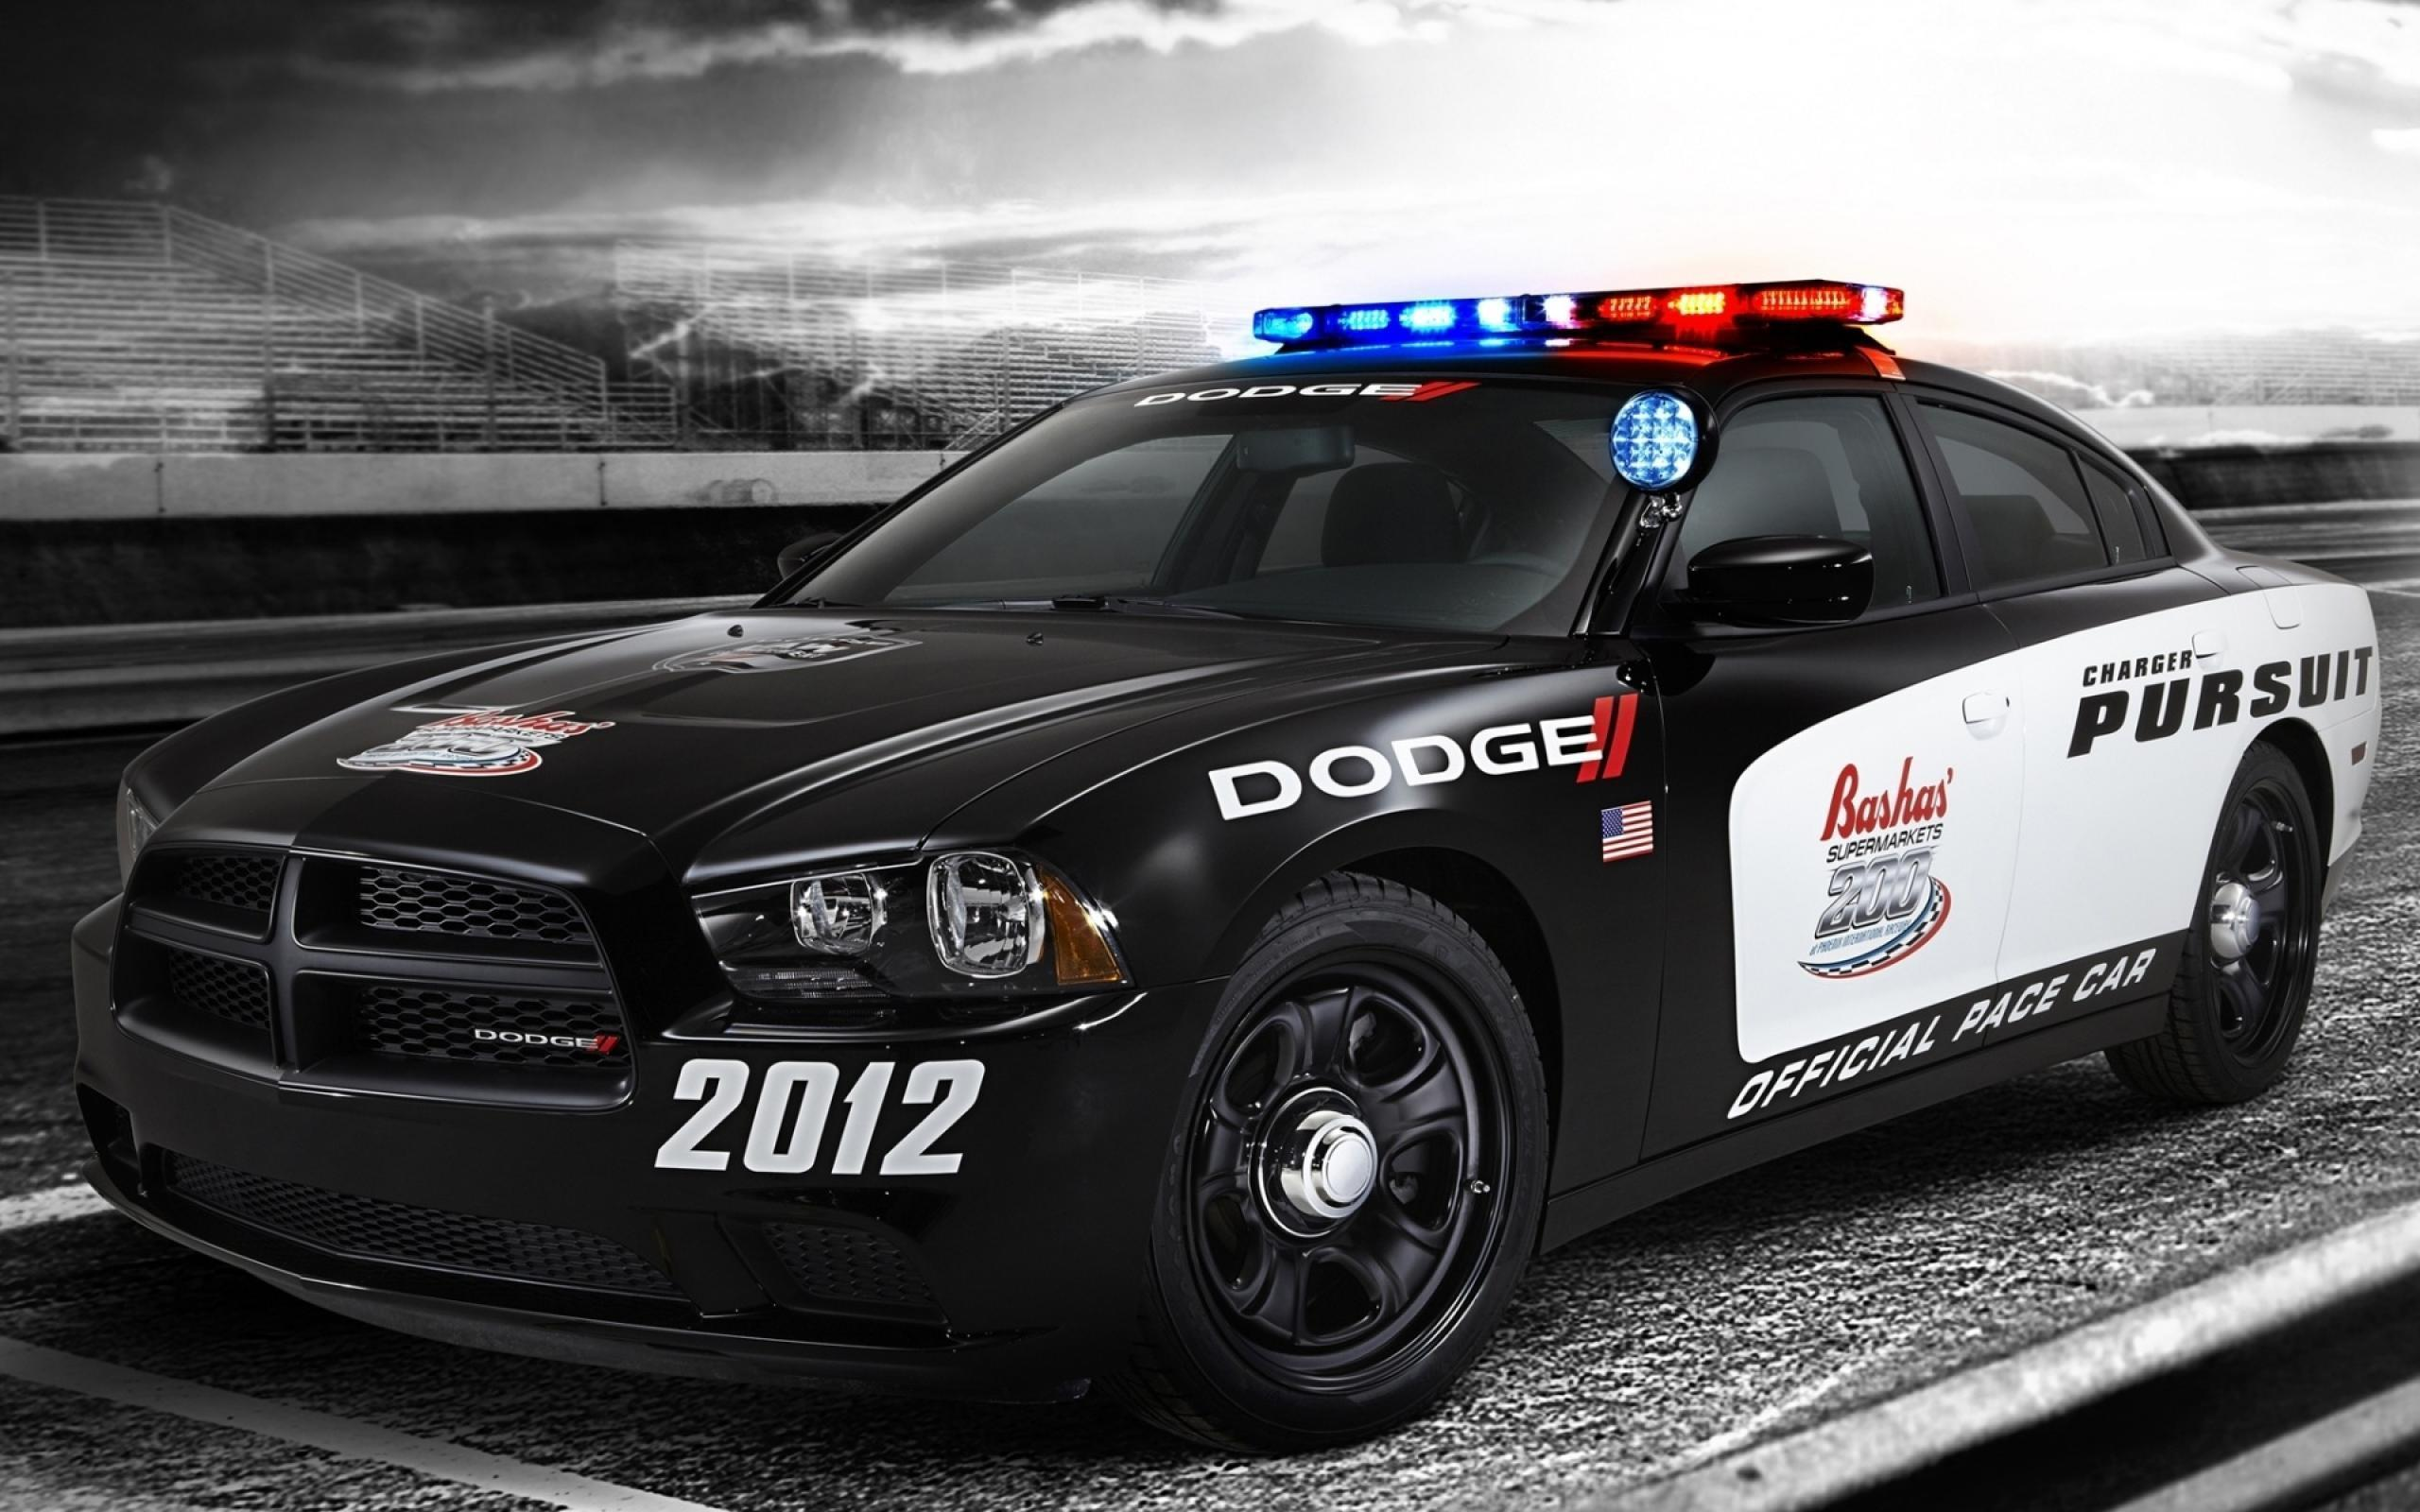 Police Car Wallpapers 2560x1600